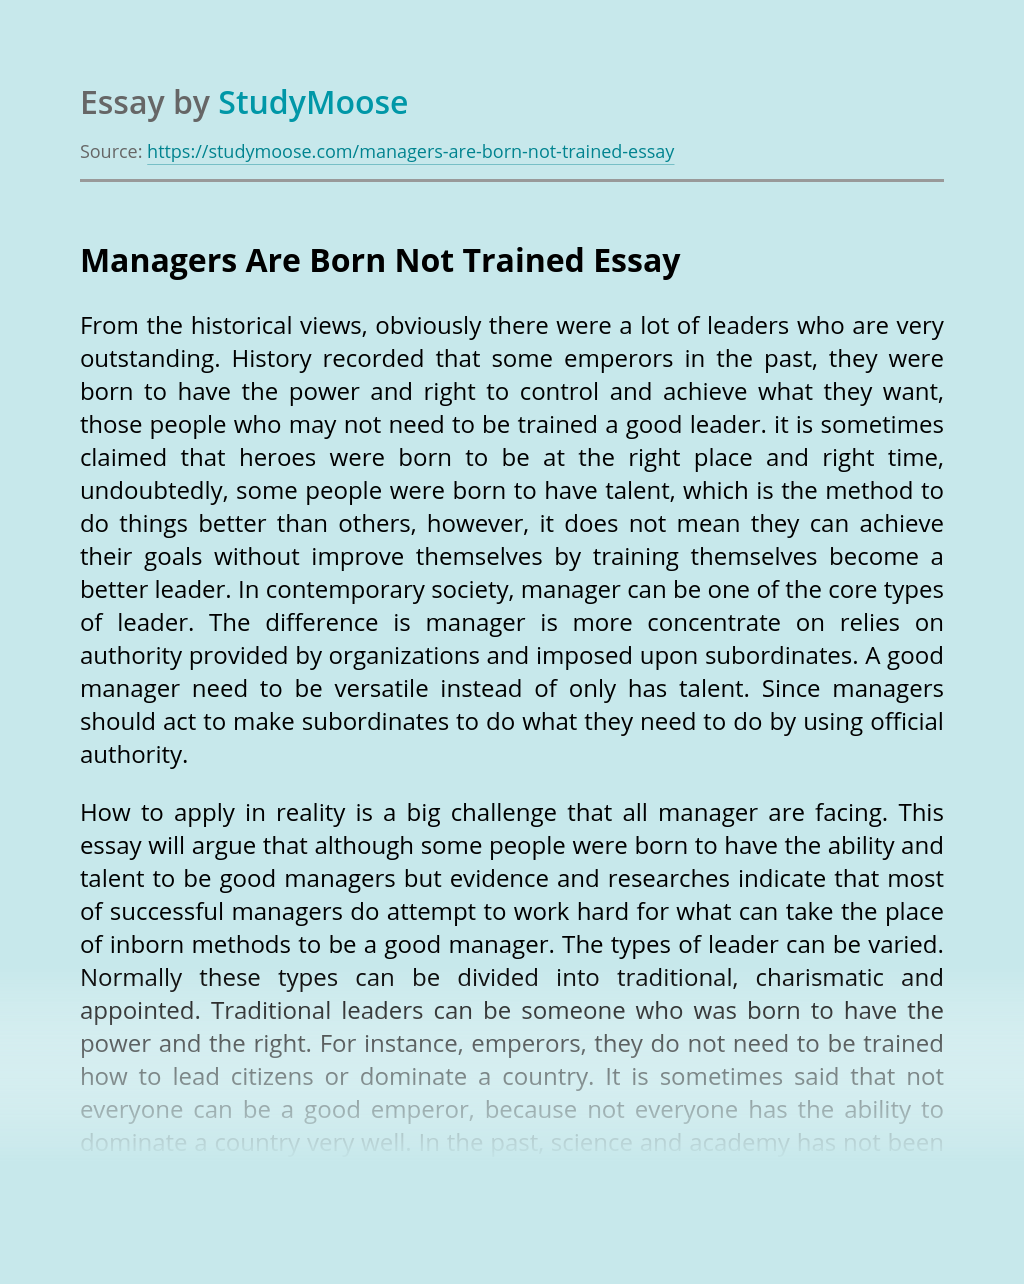 Managers Are Born Not Trained